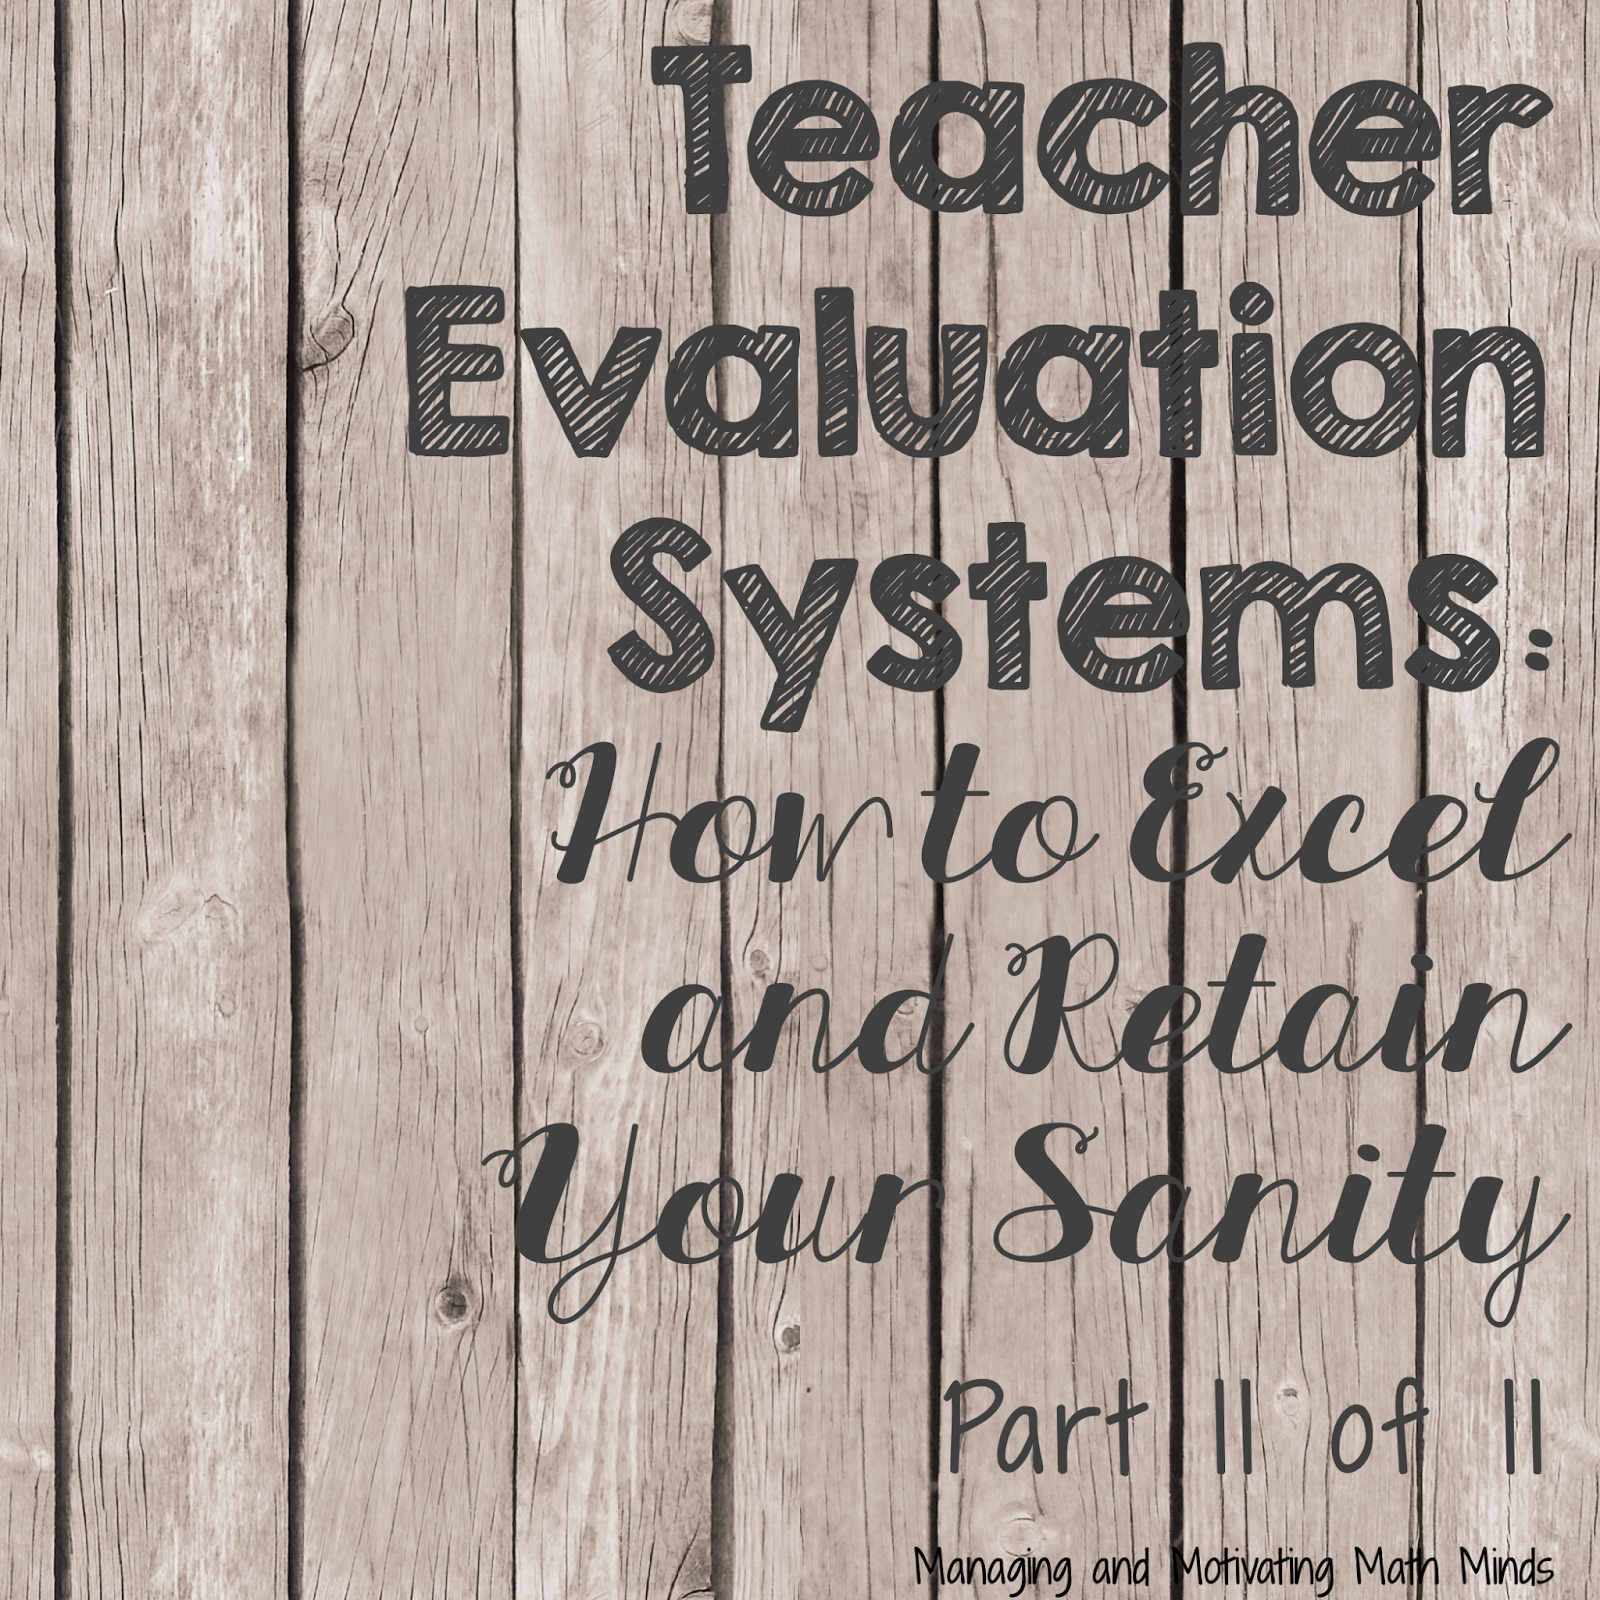 Teacher Evaluation Systems How To Excel And Retain Your Sanity